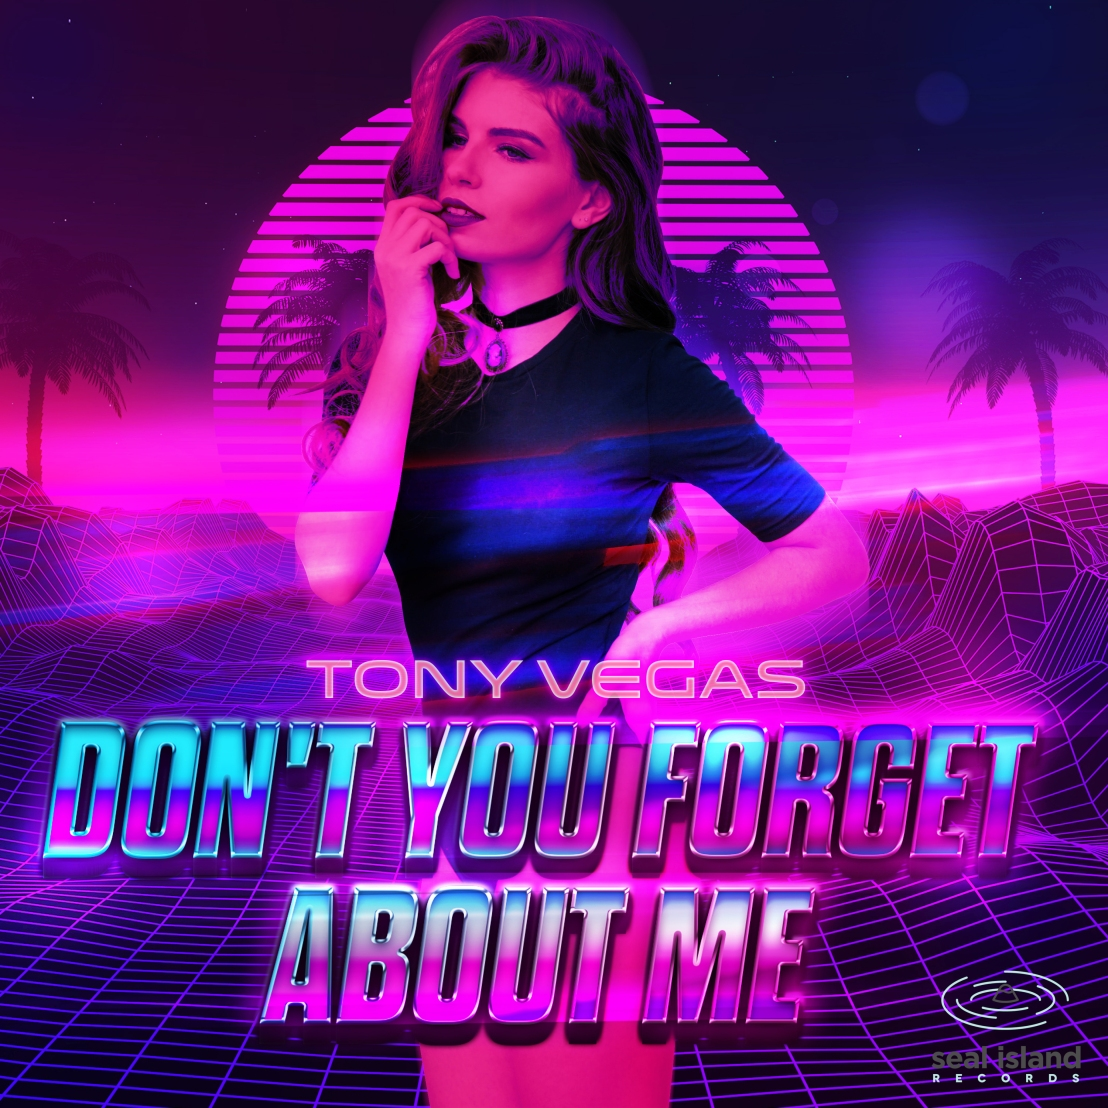 Tony Vegas – Don't You Forget About Me